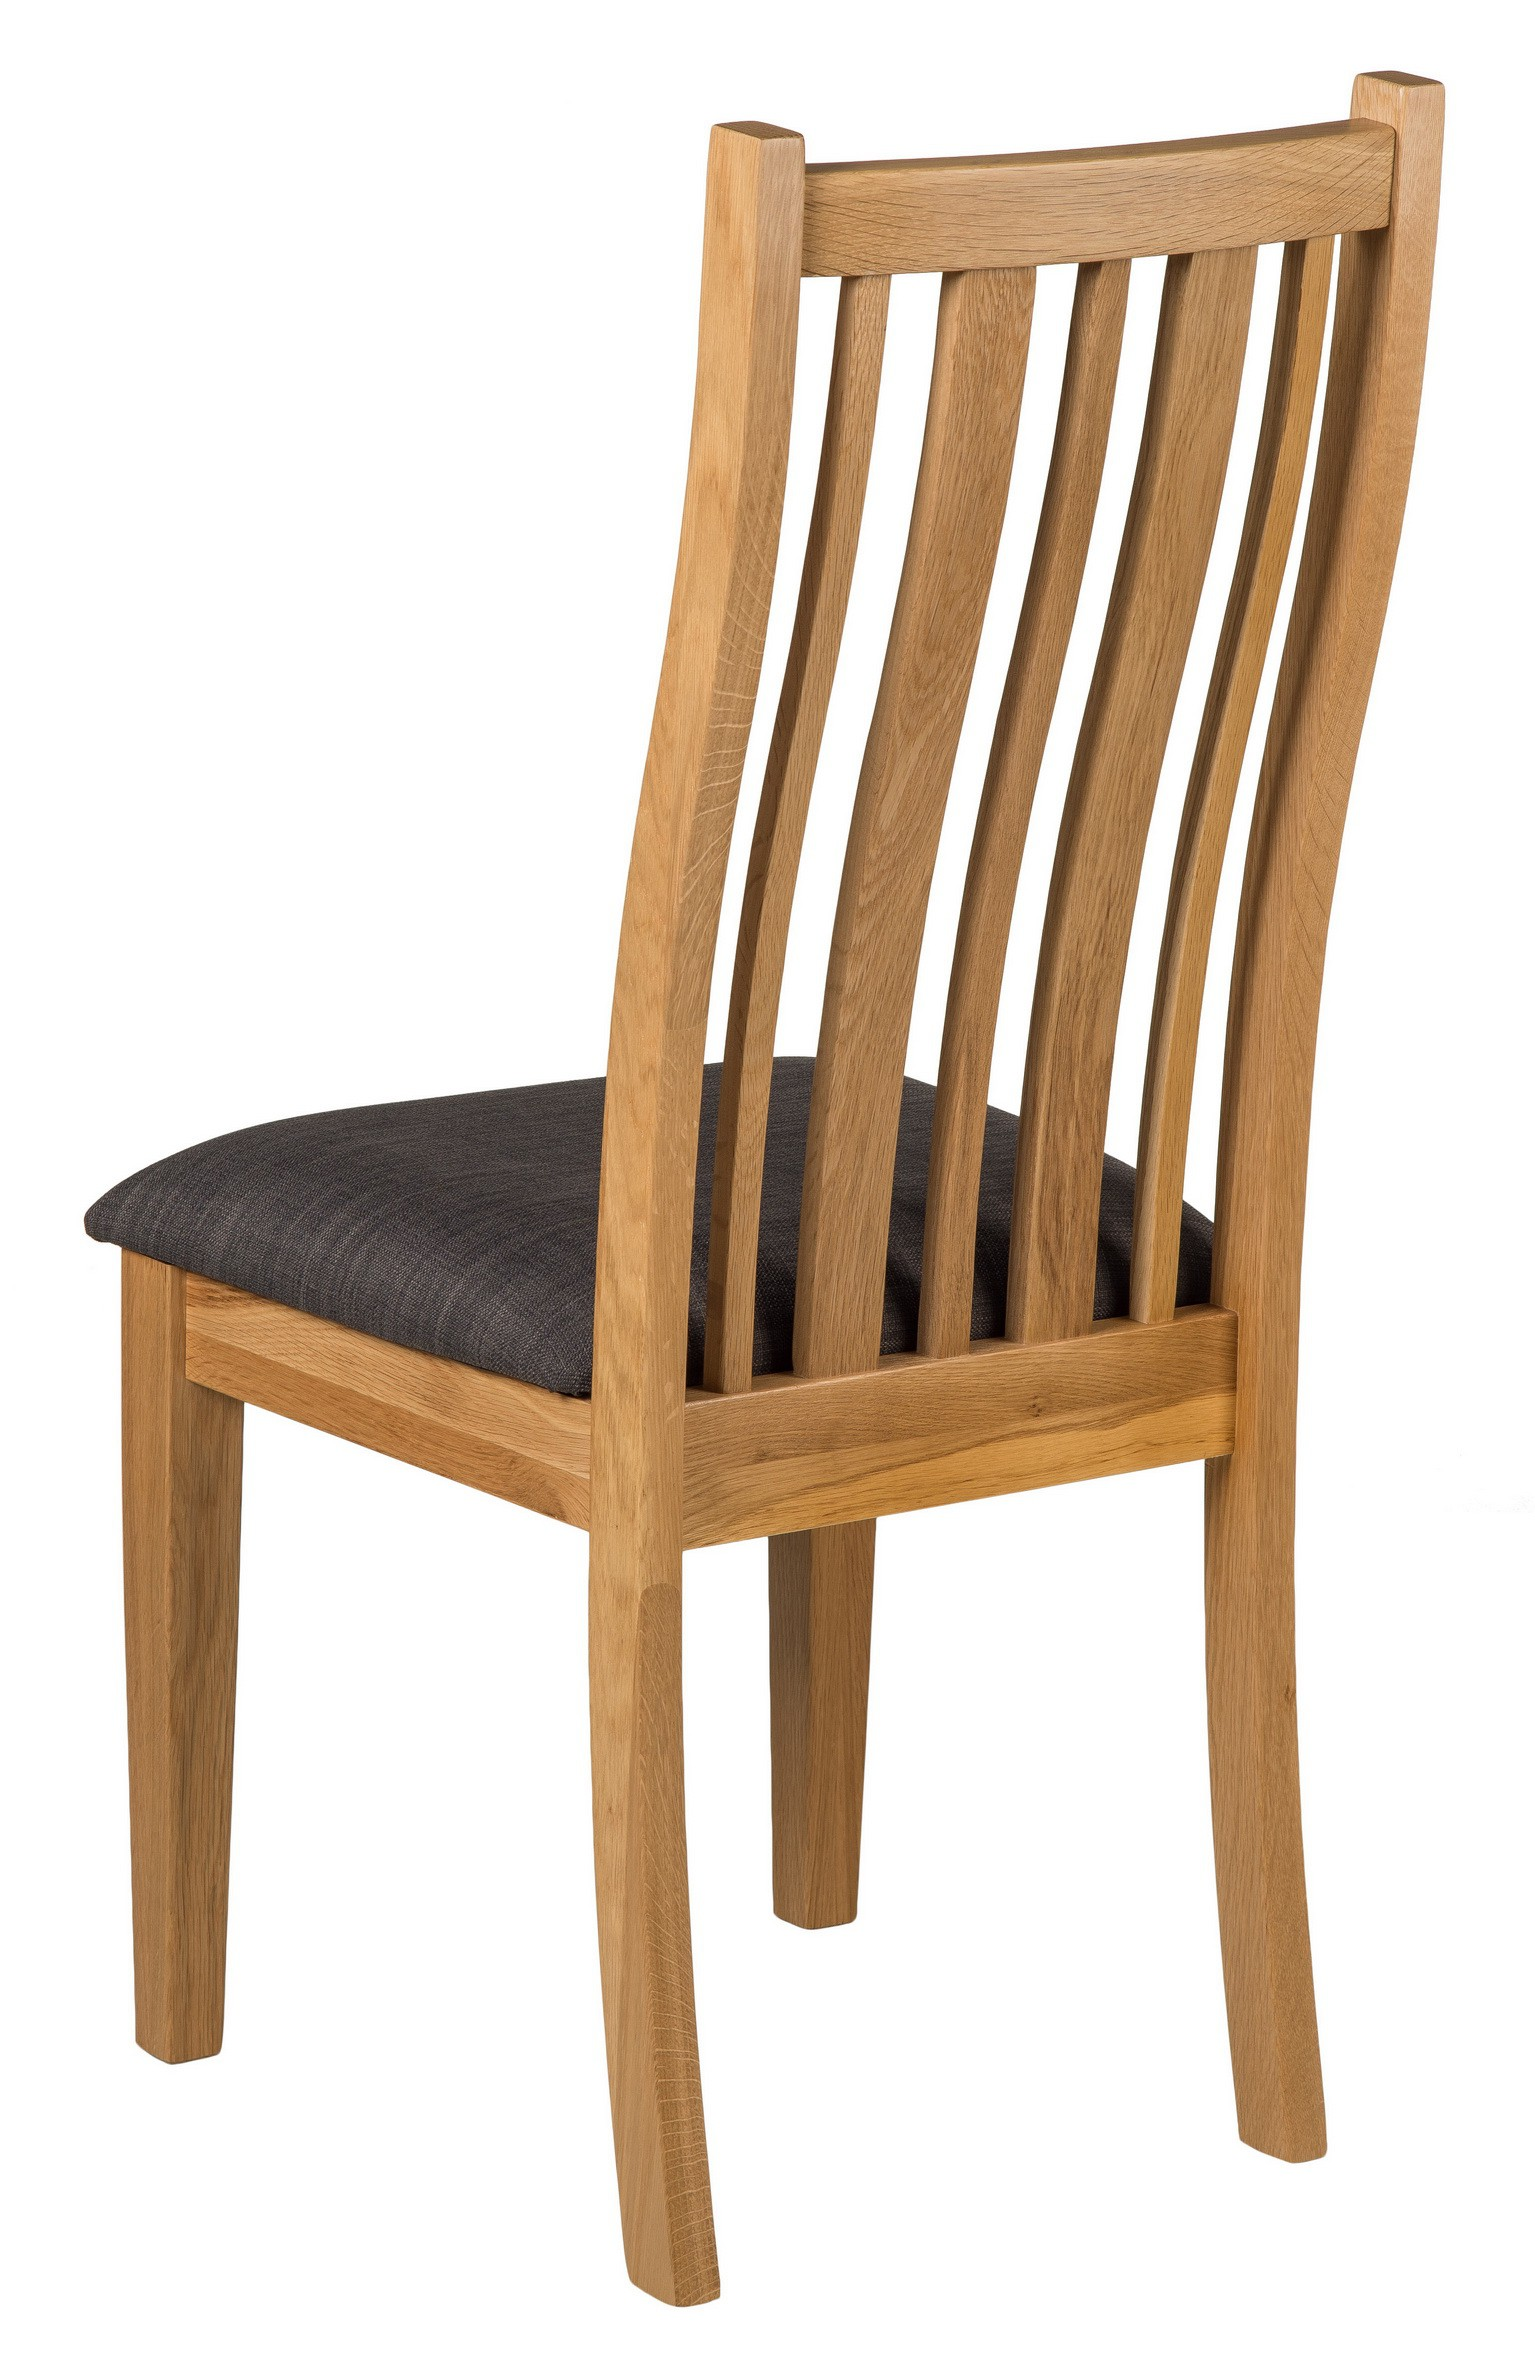 Oak Chair With Charcoal Grey Fabric Seat Pad (Pair